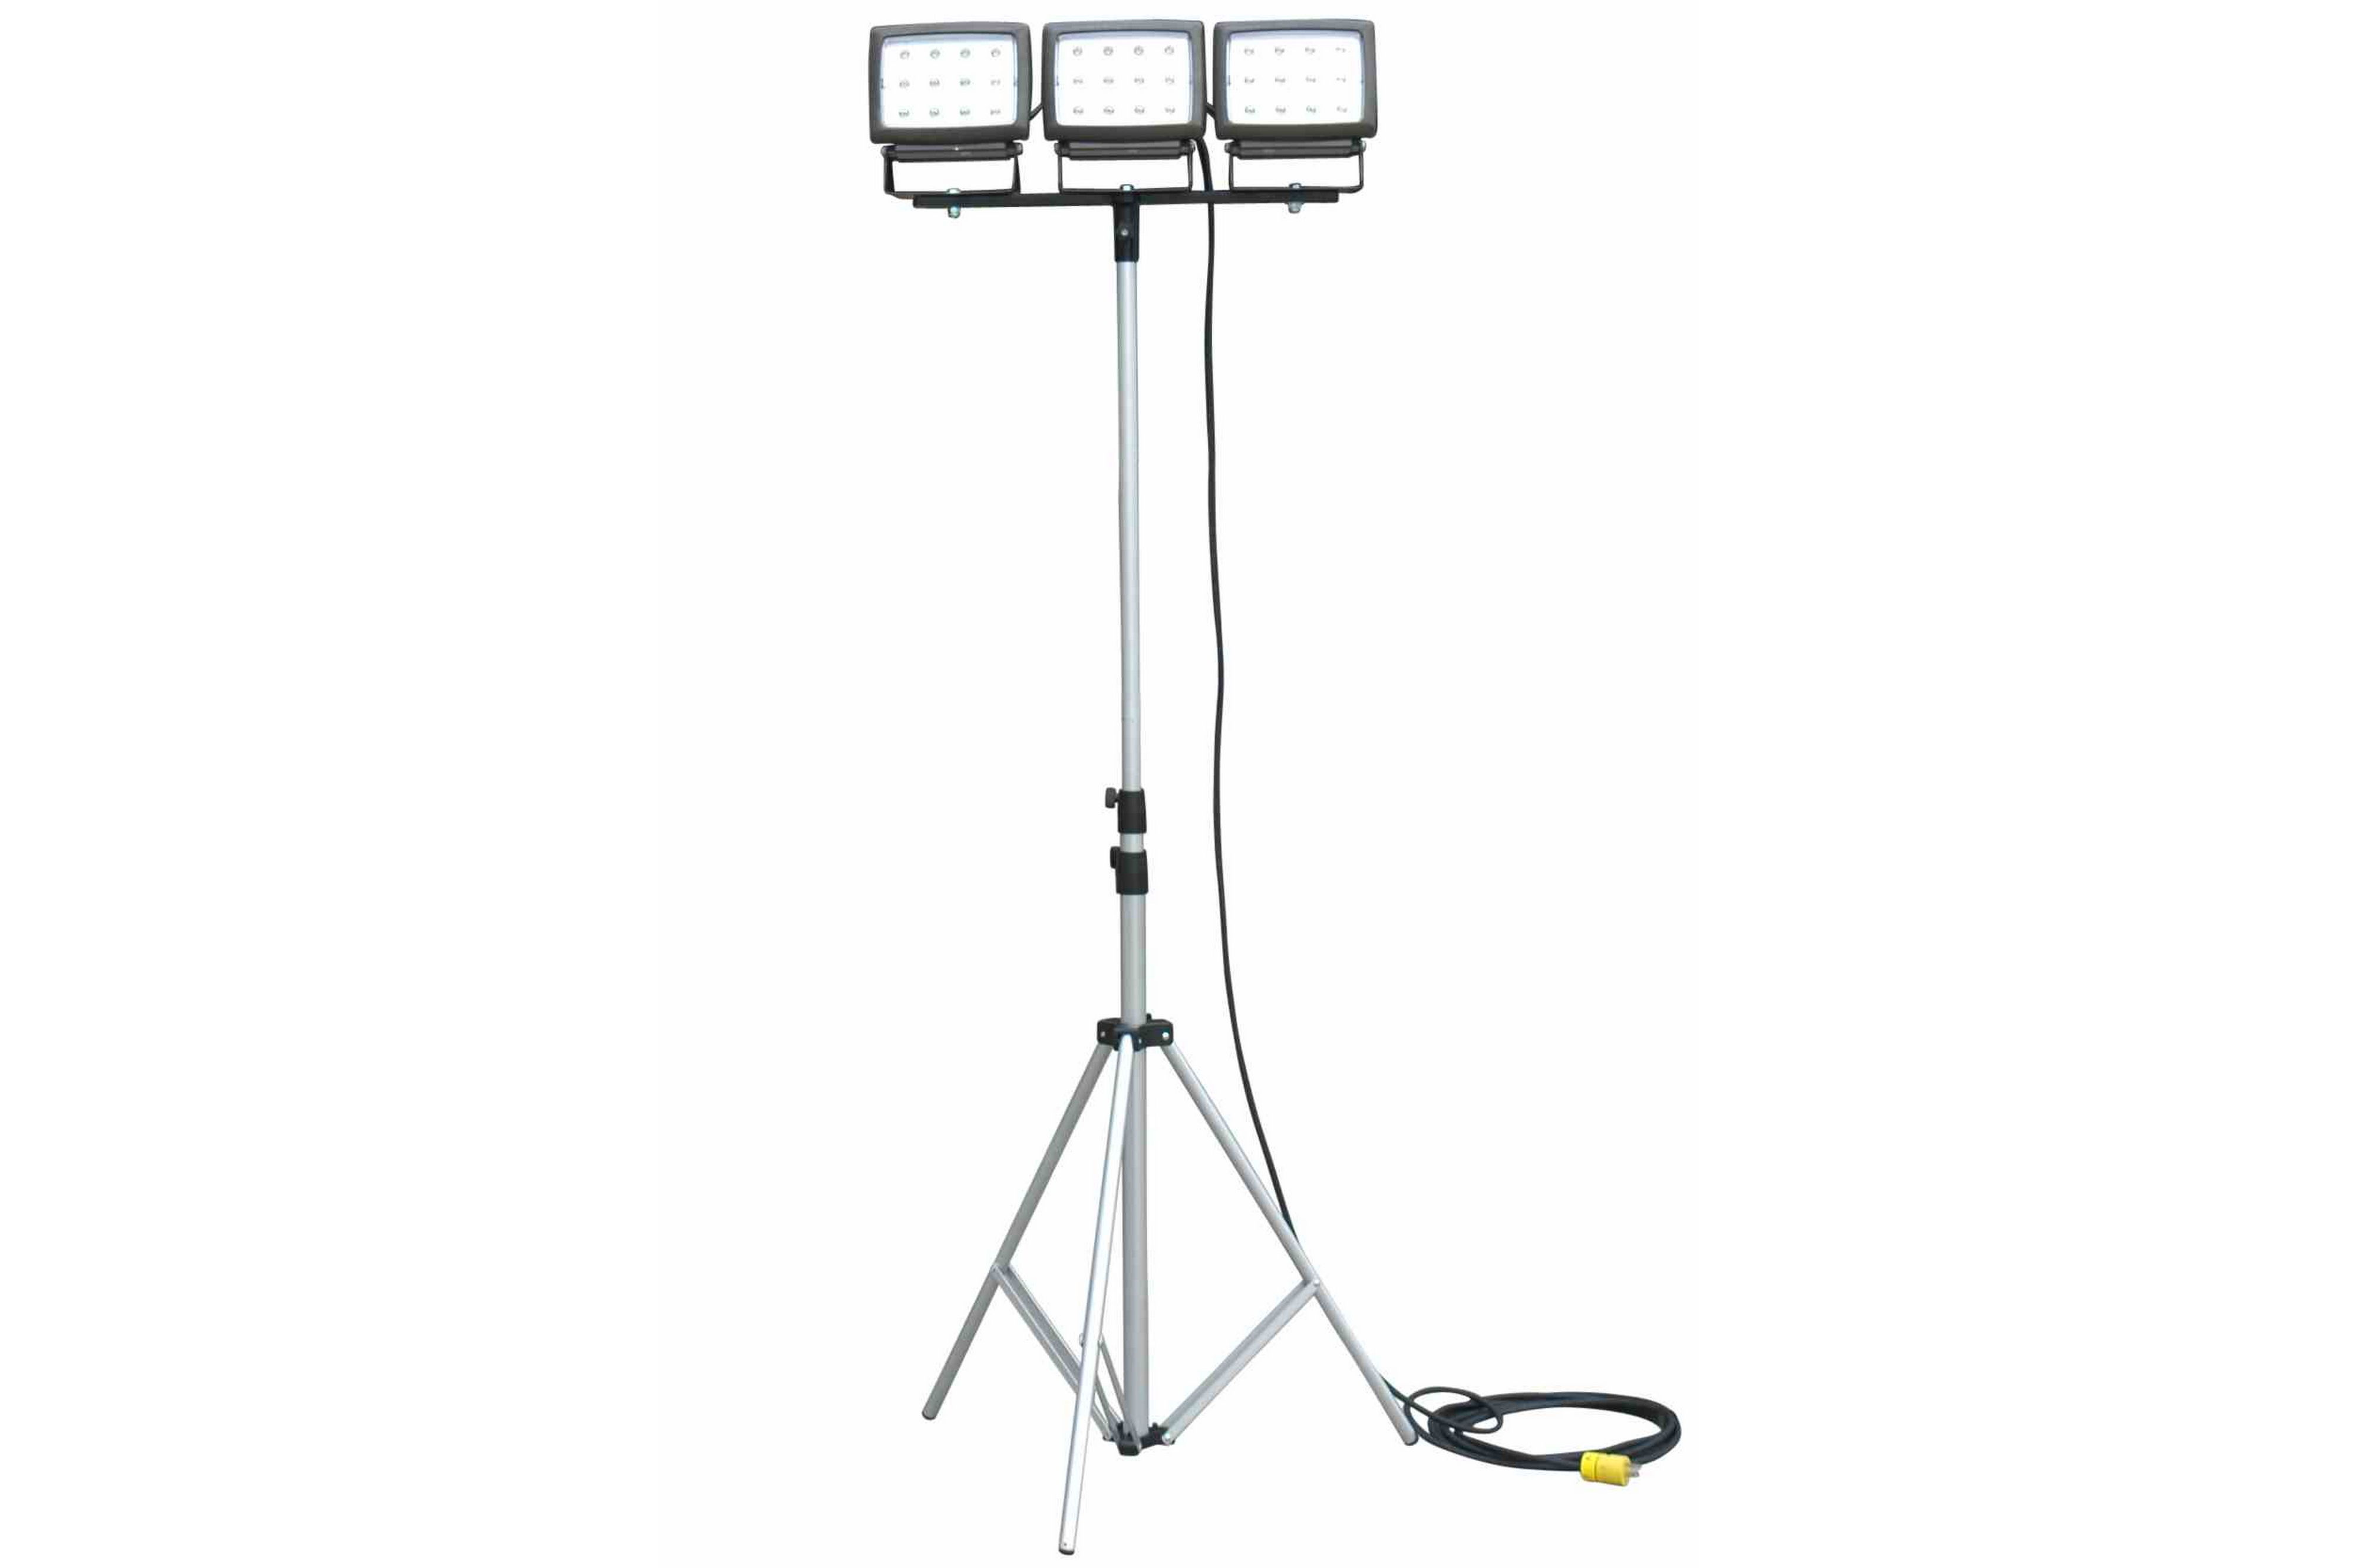 3 40 Watt Led Flood Lights On Telescoping Tripod